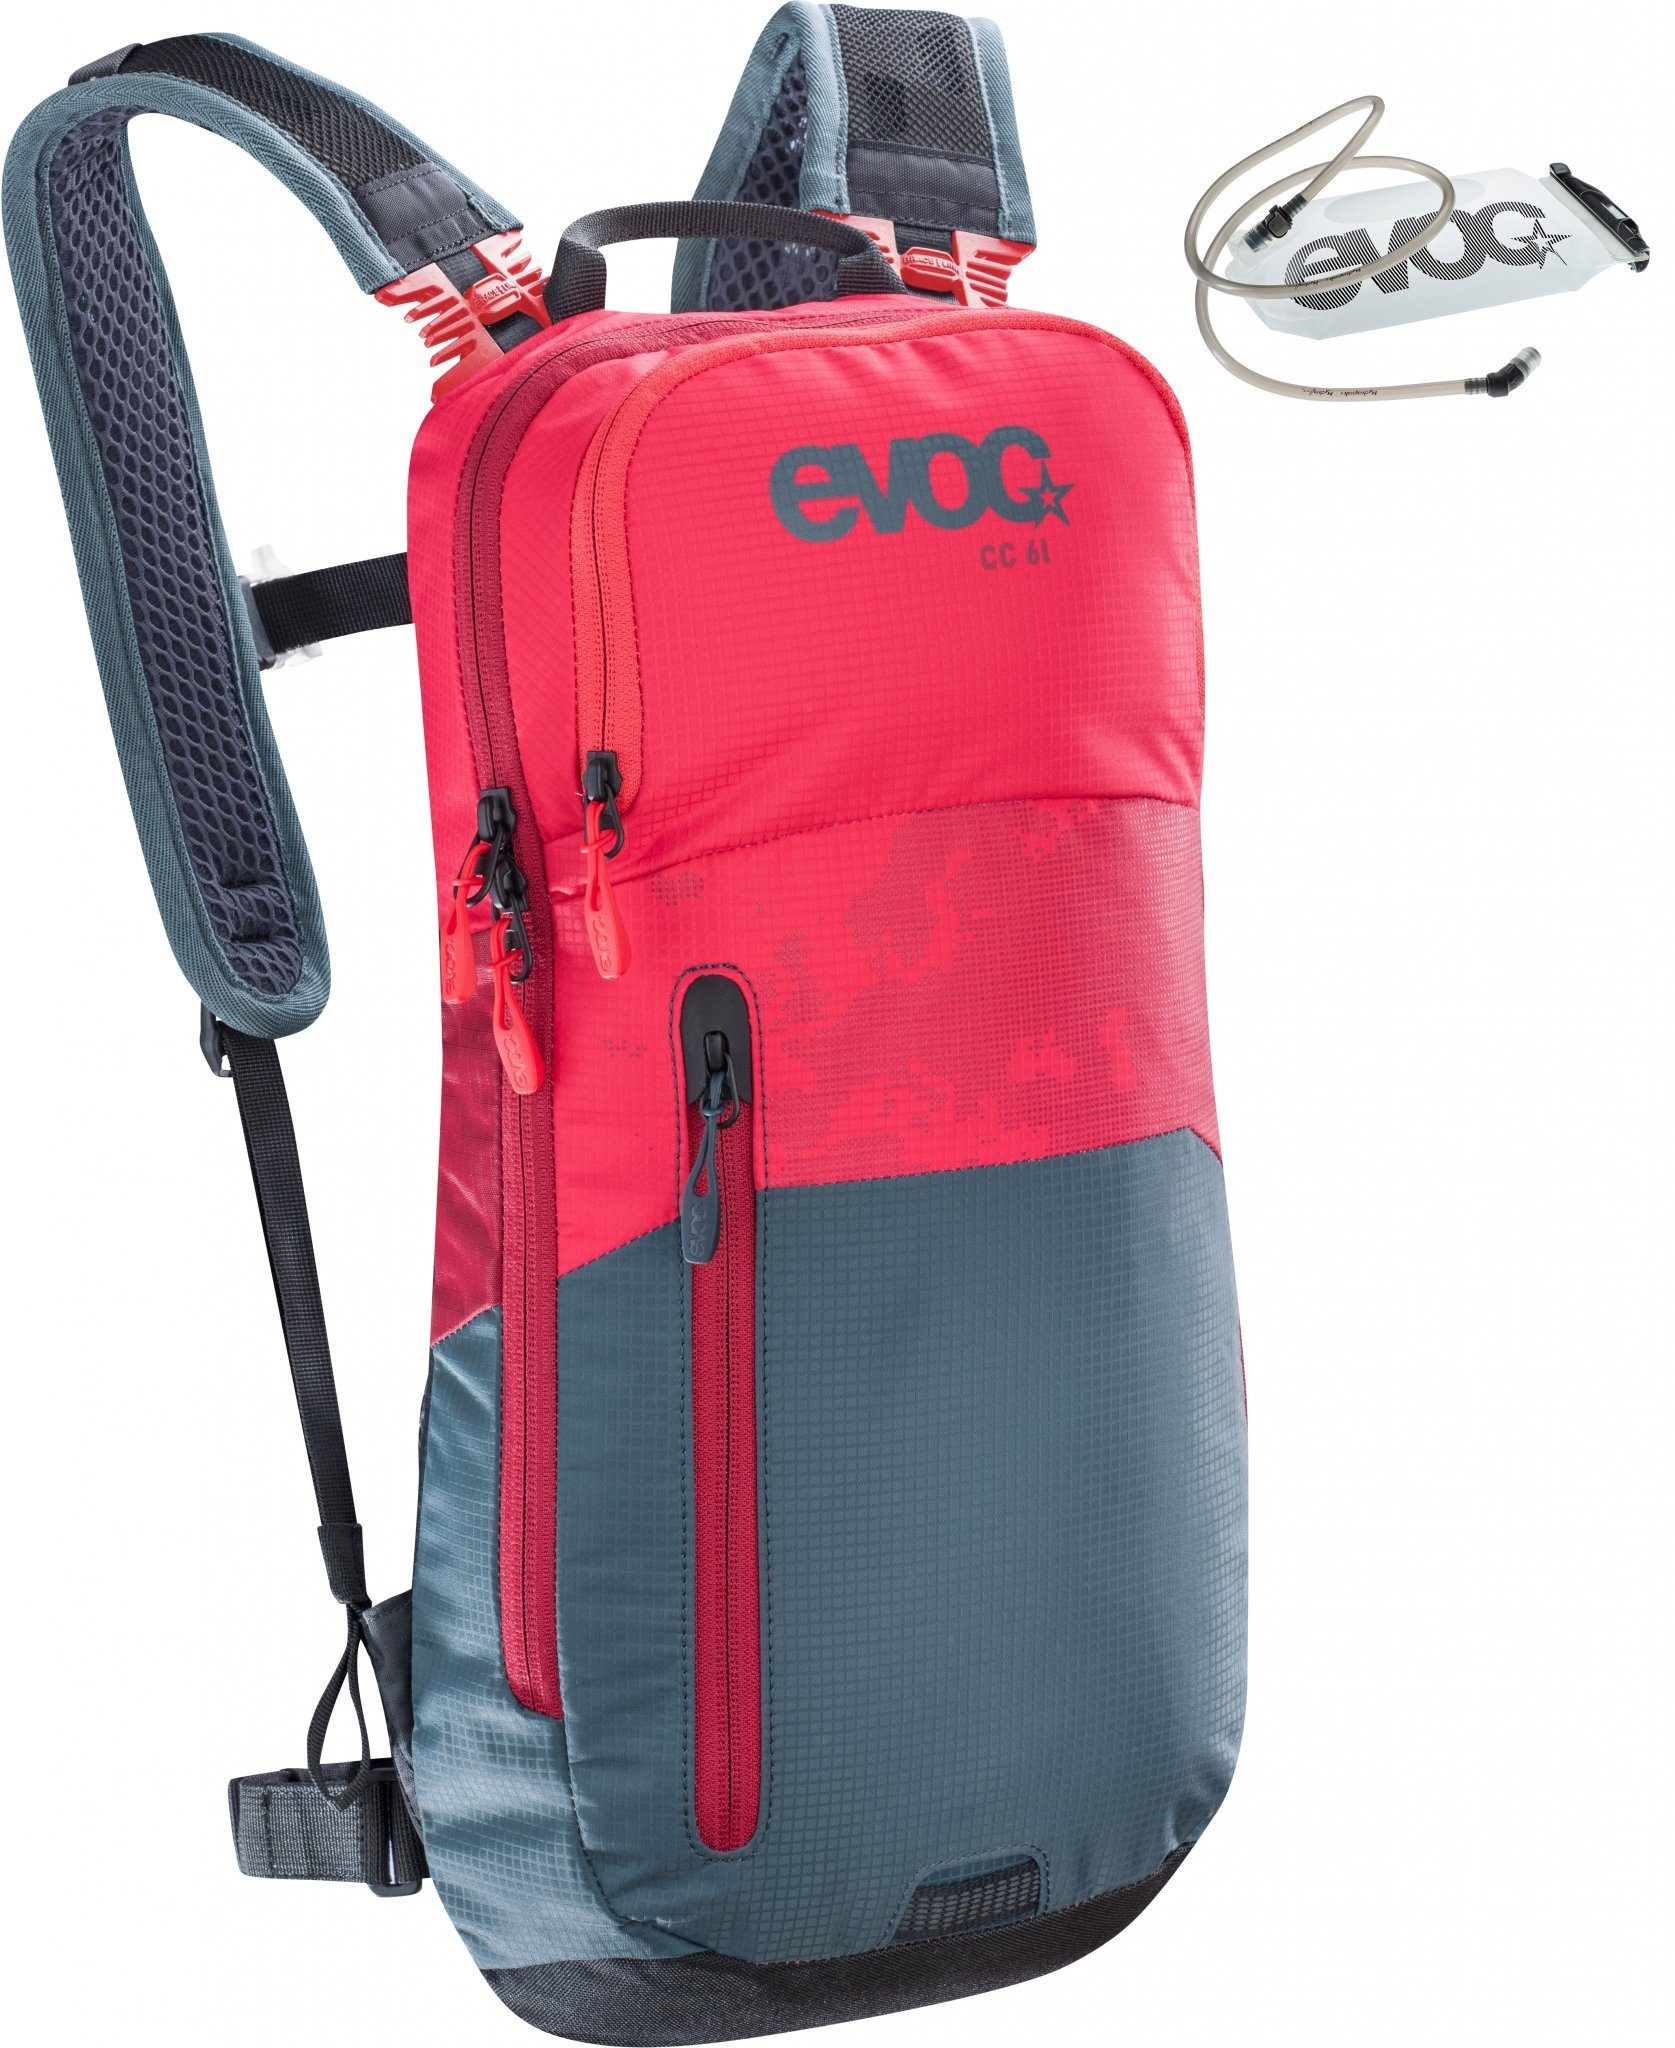 EVOC Rucksack »Evoc CC Backpack 6 L + Hydration Bladder 2 L«